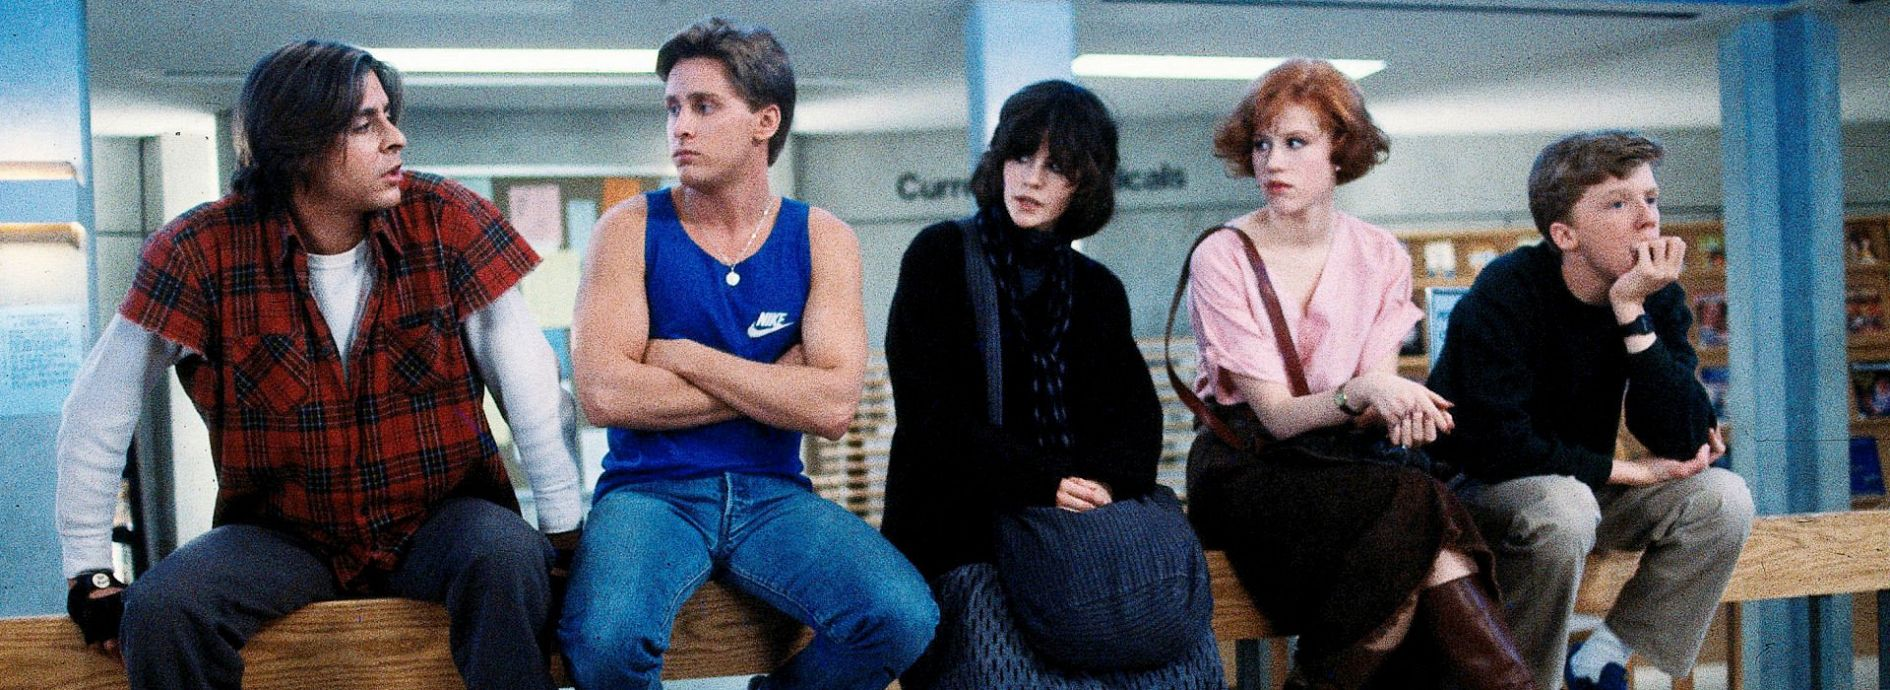 conflict in the breakfast club movie